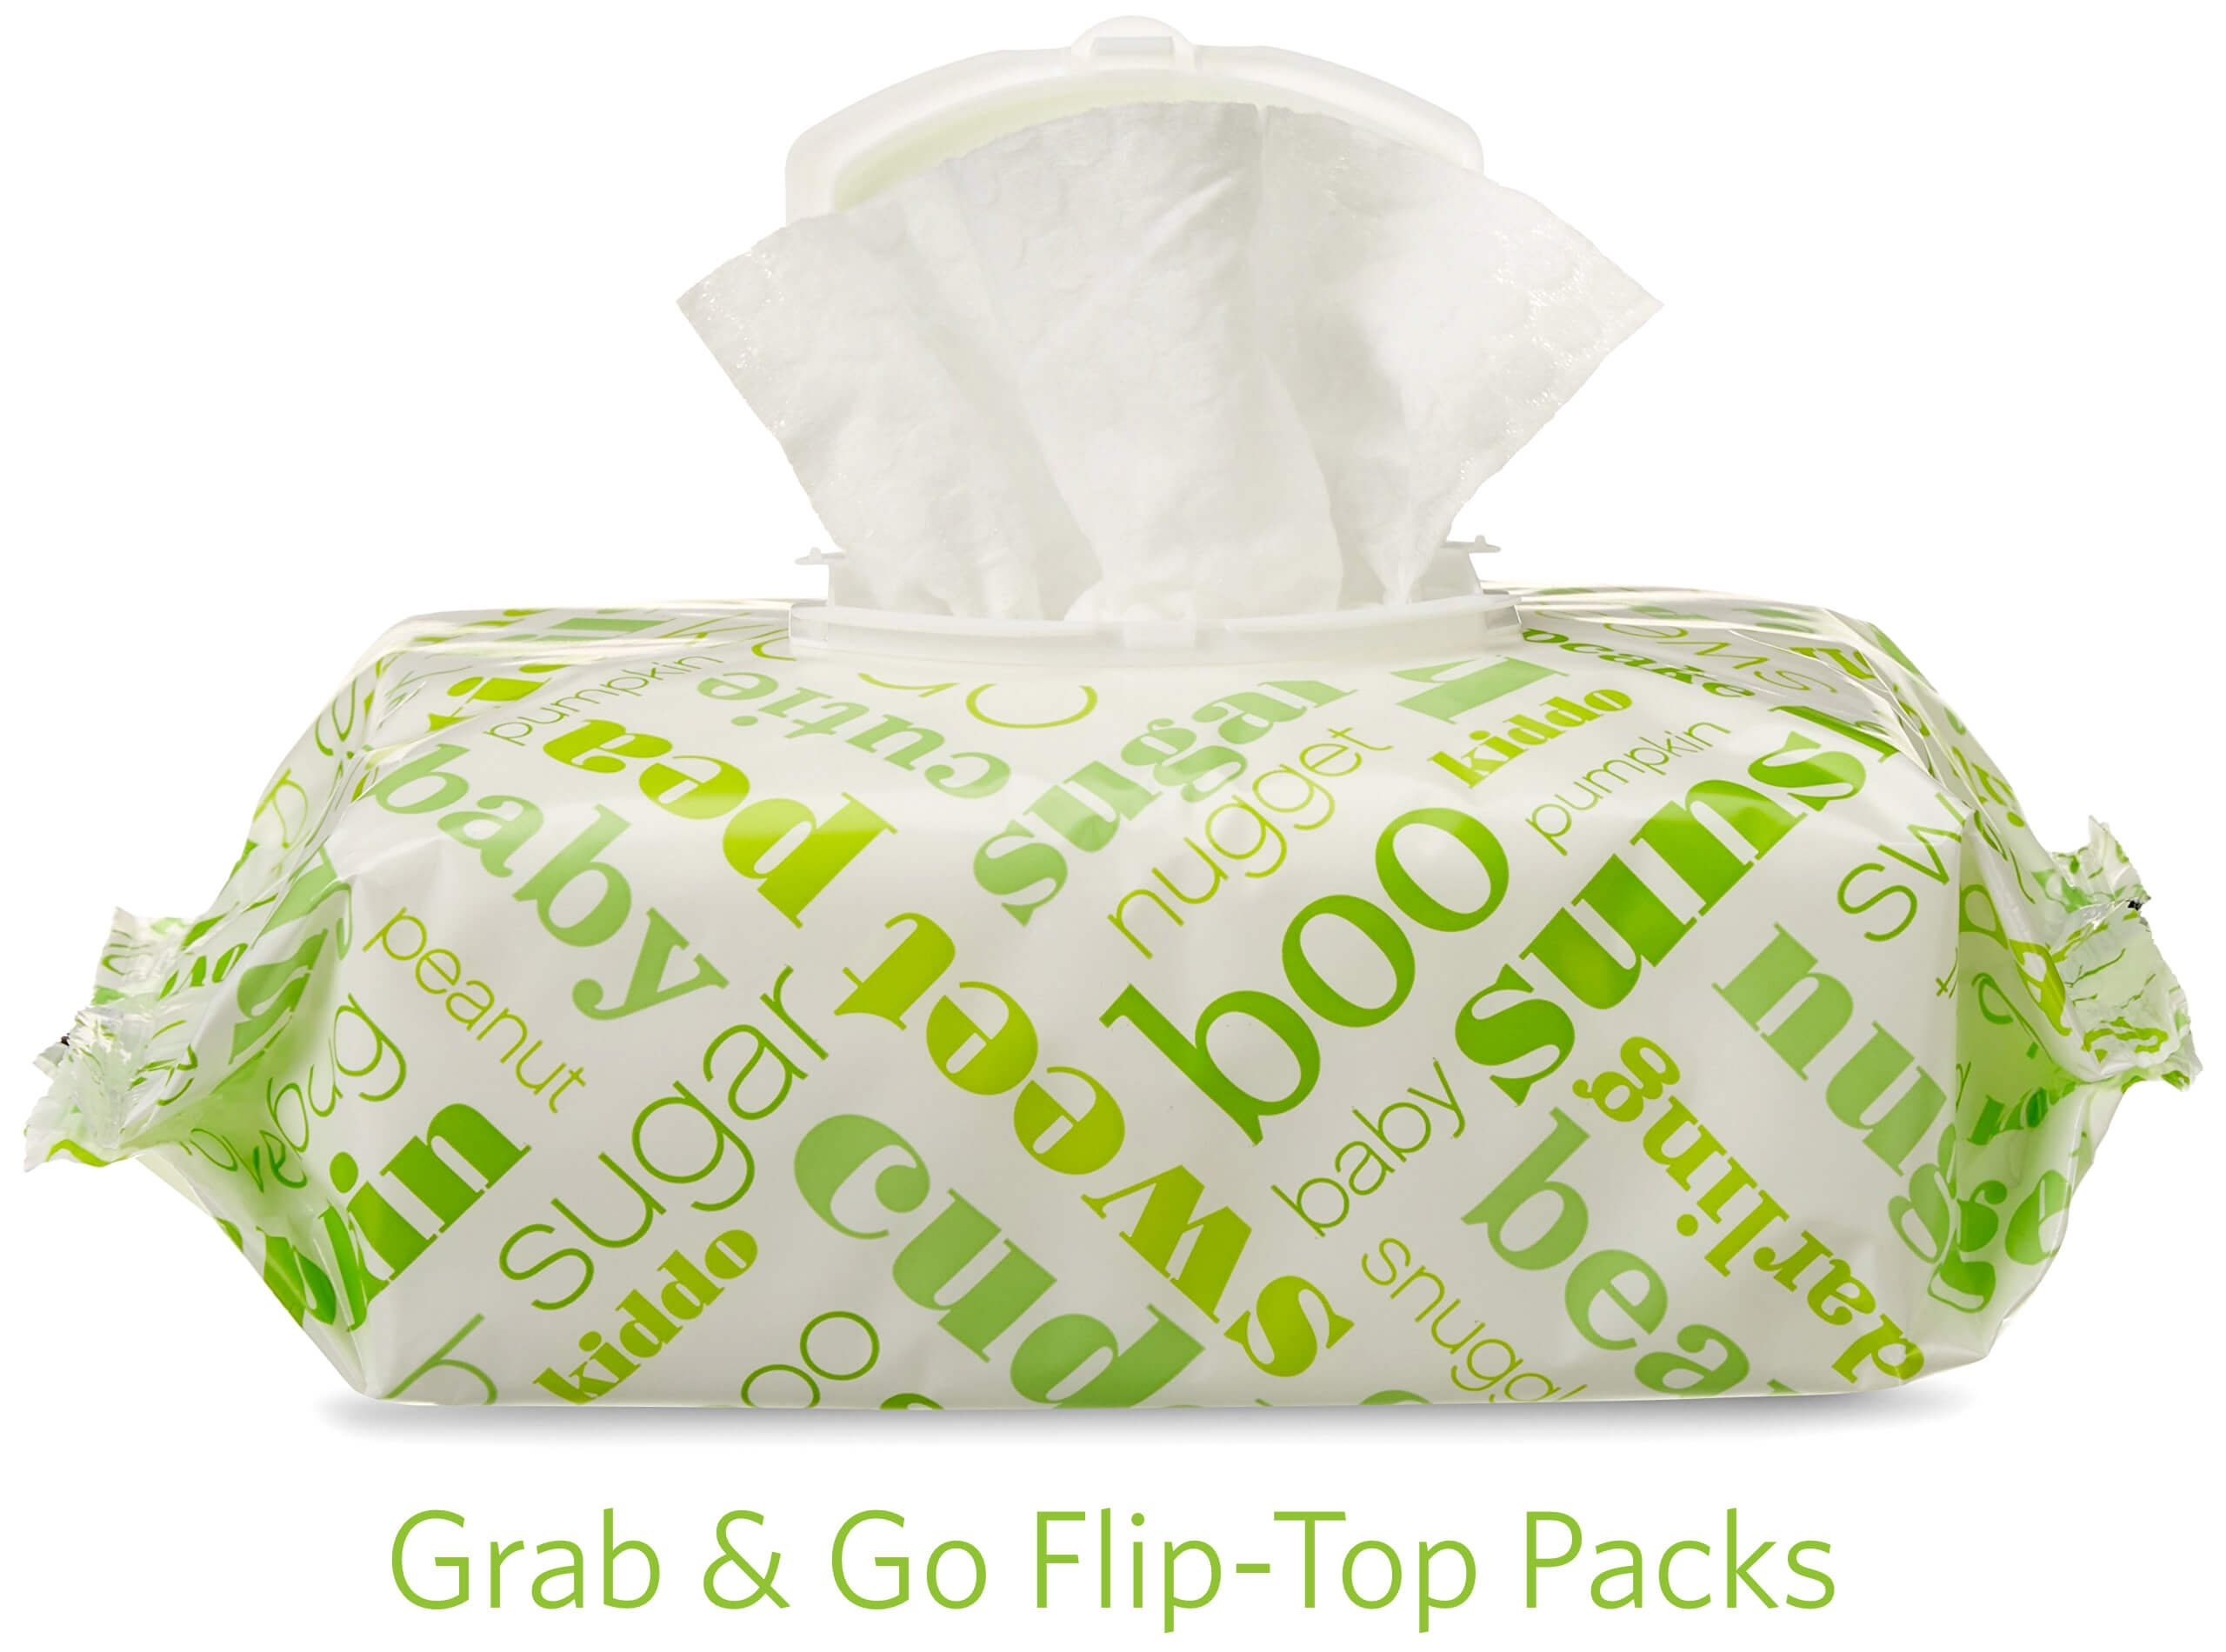 Amazon Elements Baby Wipes, Fresh Scent, 480 Count, Flip-Top Packs by Amazon Elements (Image #6)